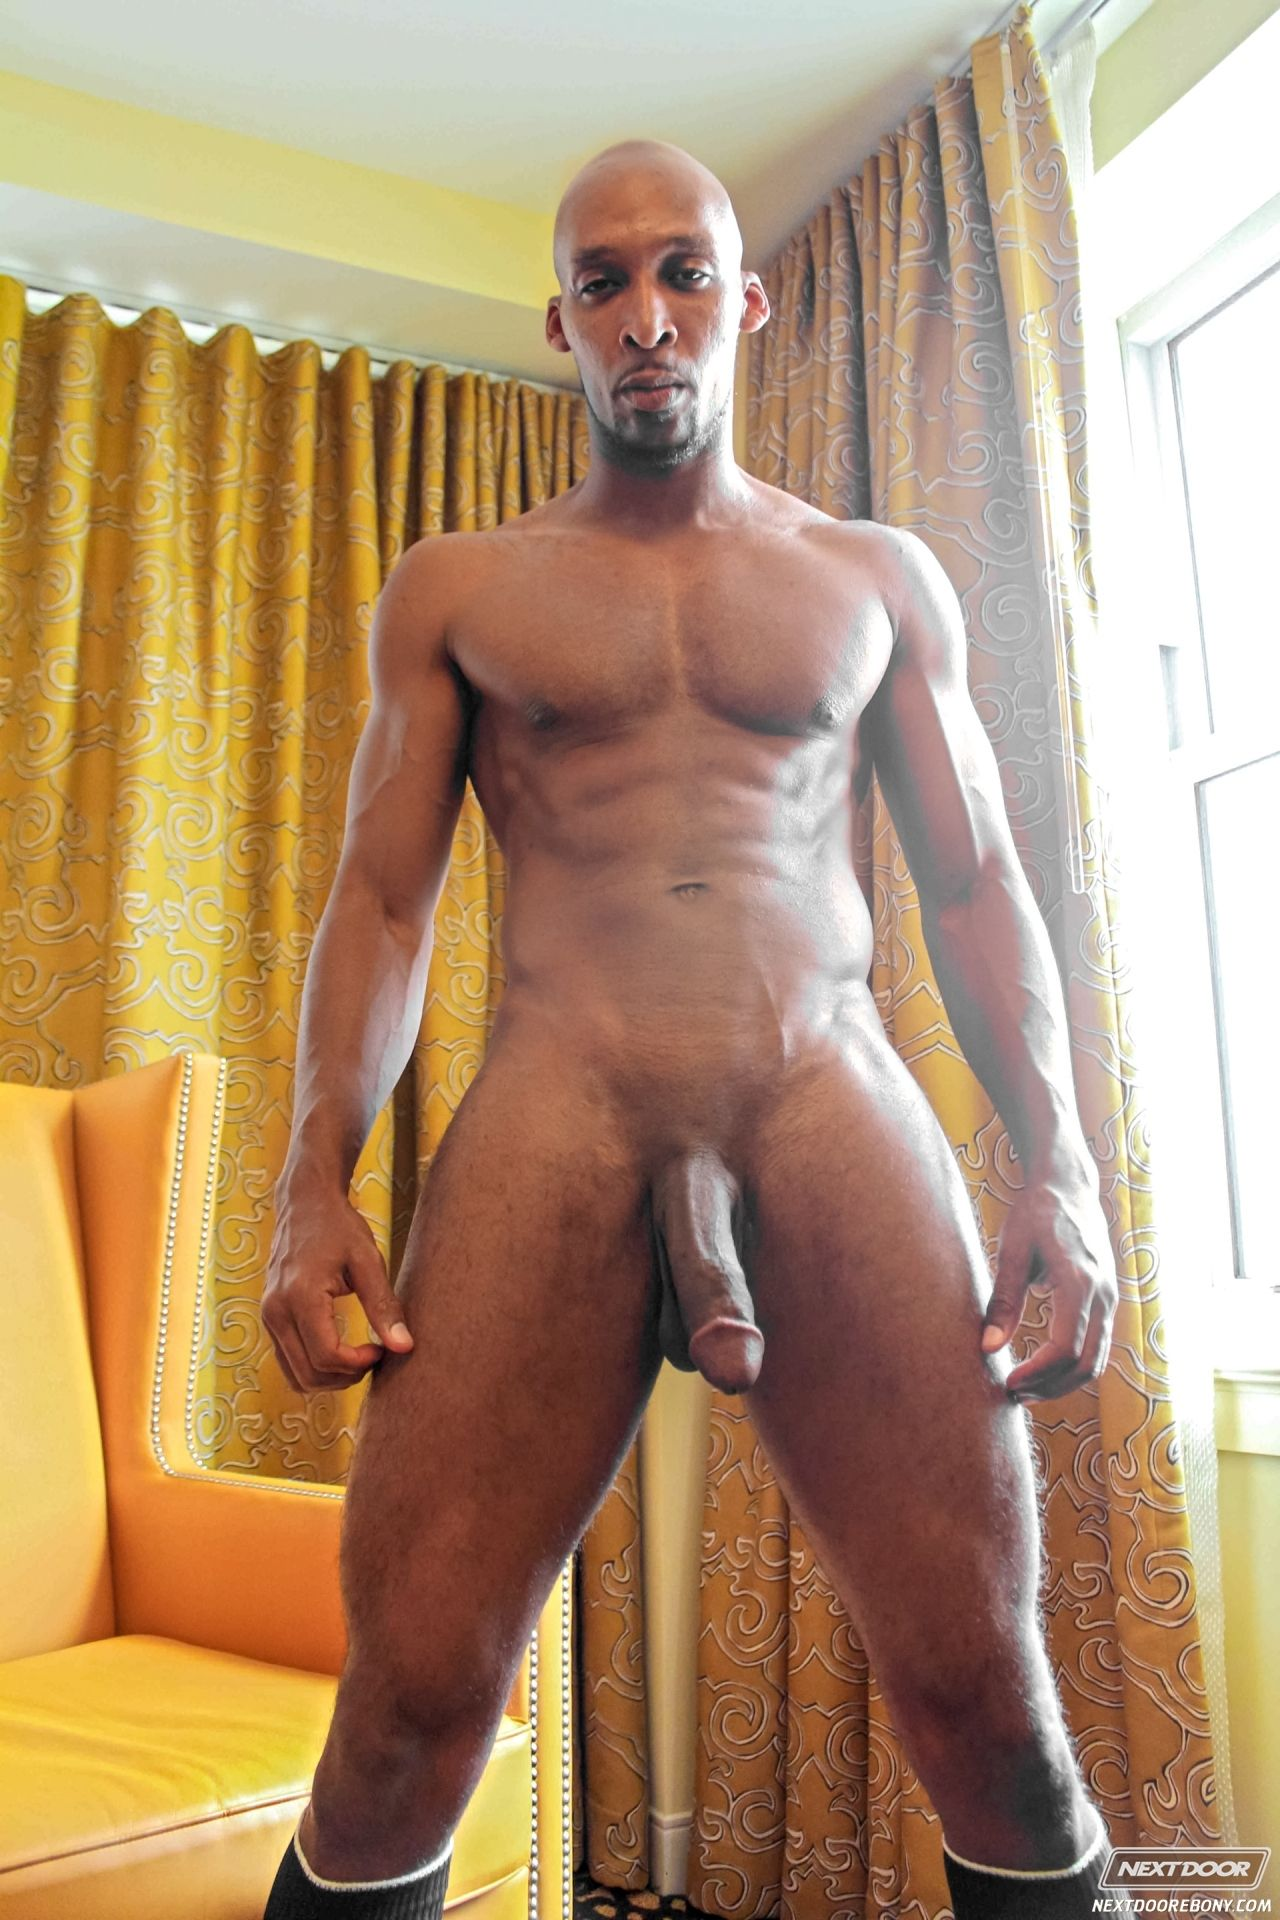 Black 18 Nude black man with big cock . adult videos. comments: 1